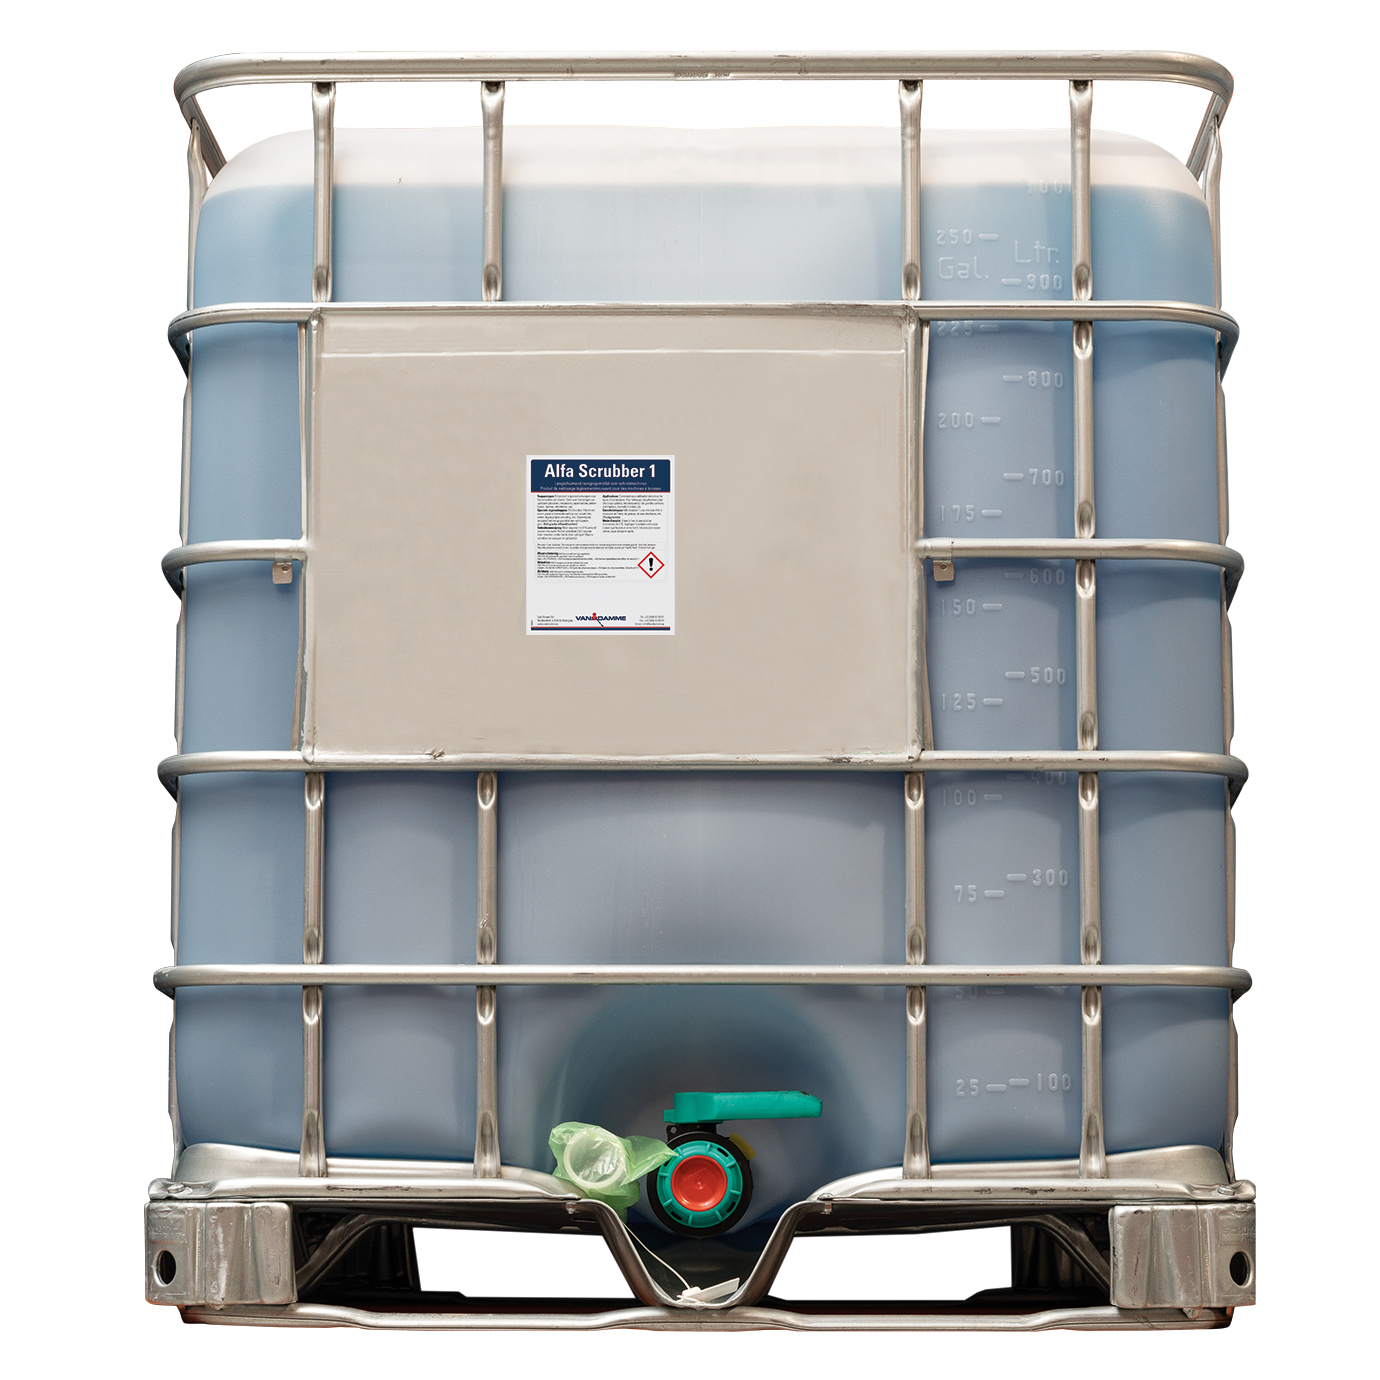 ALFA SCRUBBER 1 IN CONTAINER (IBC)